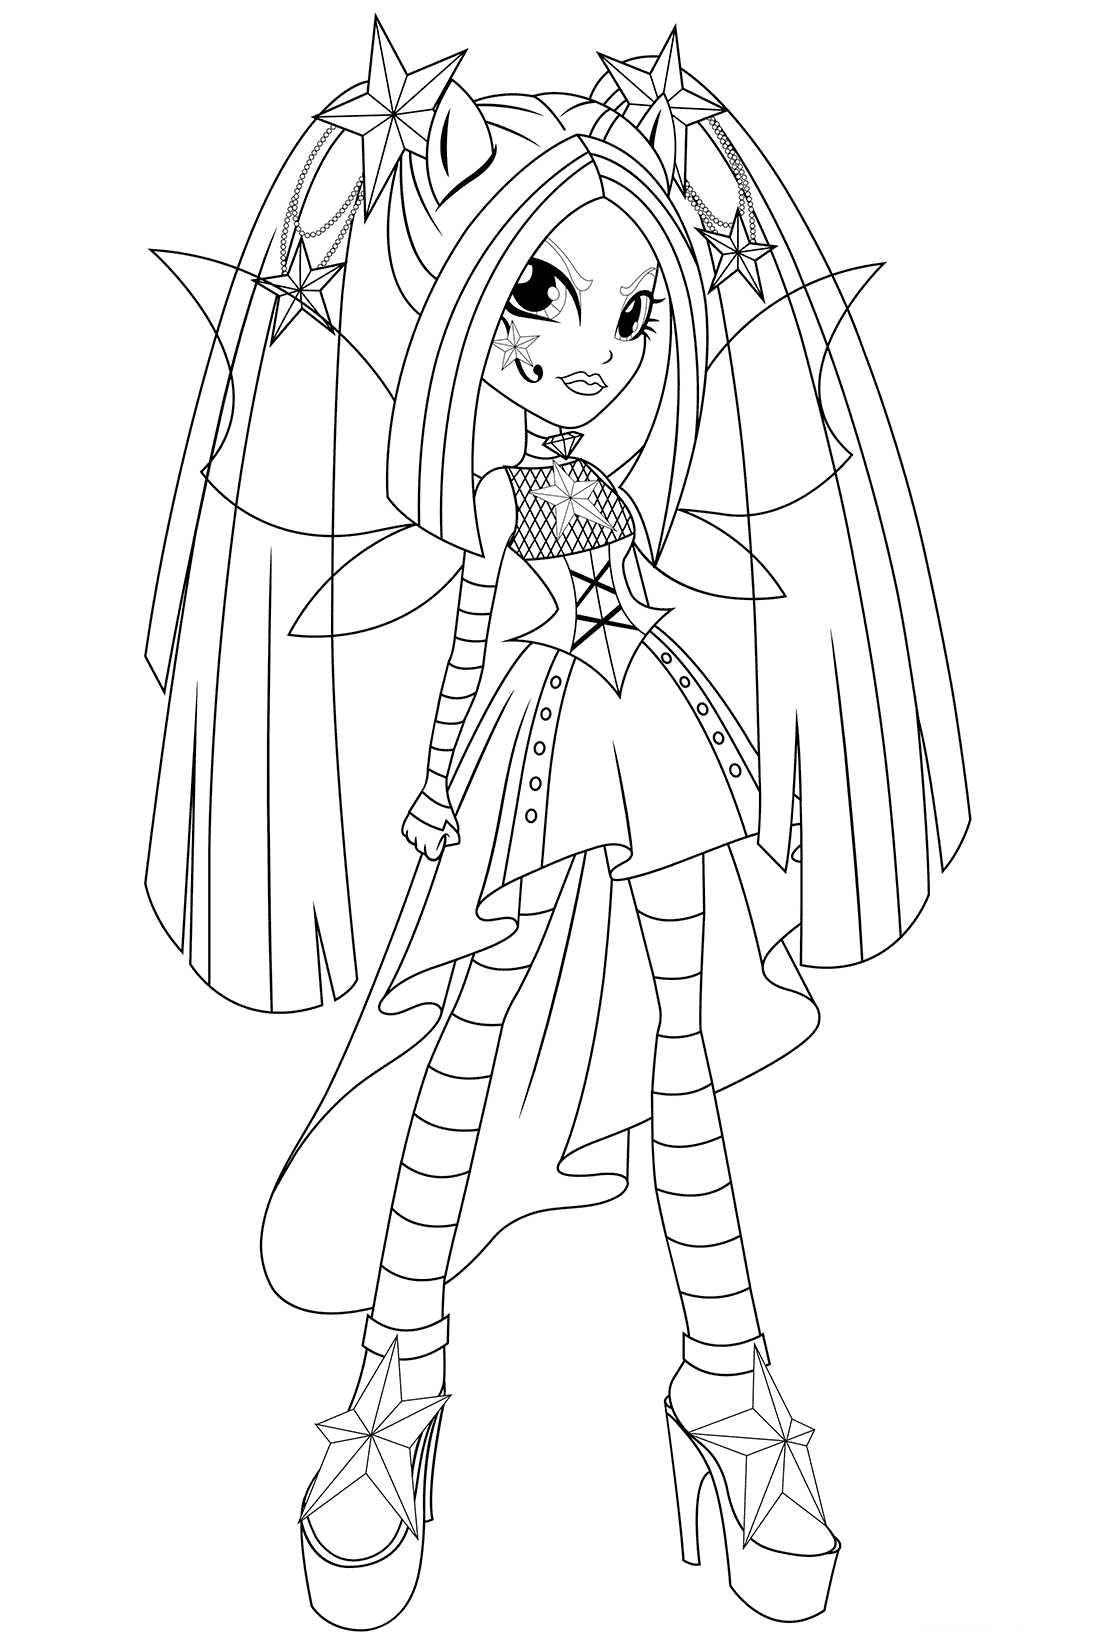 Mlp Equestria Girls Coloring Pages at GetDrawings | Free ...